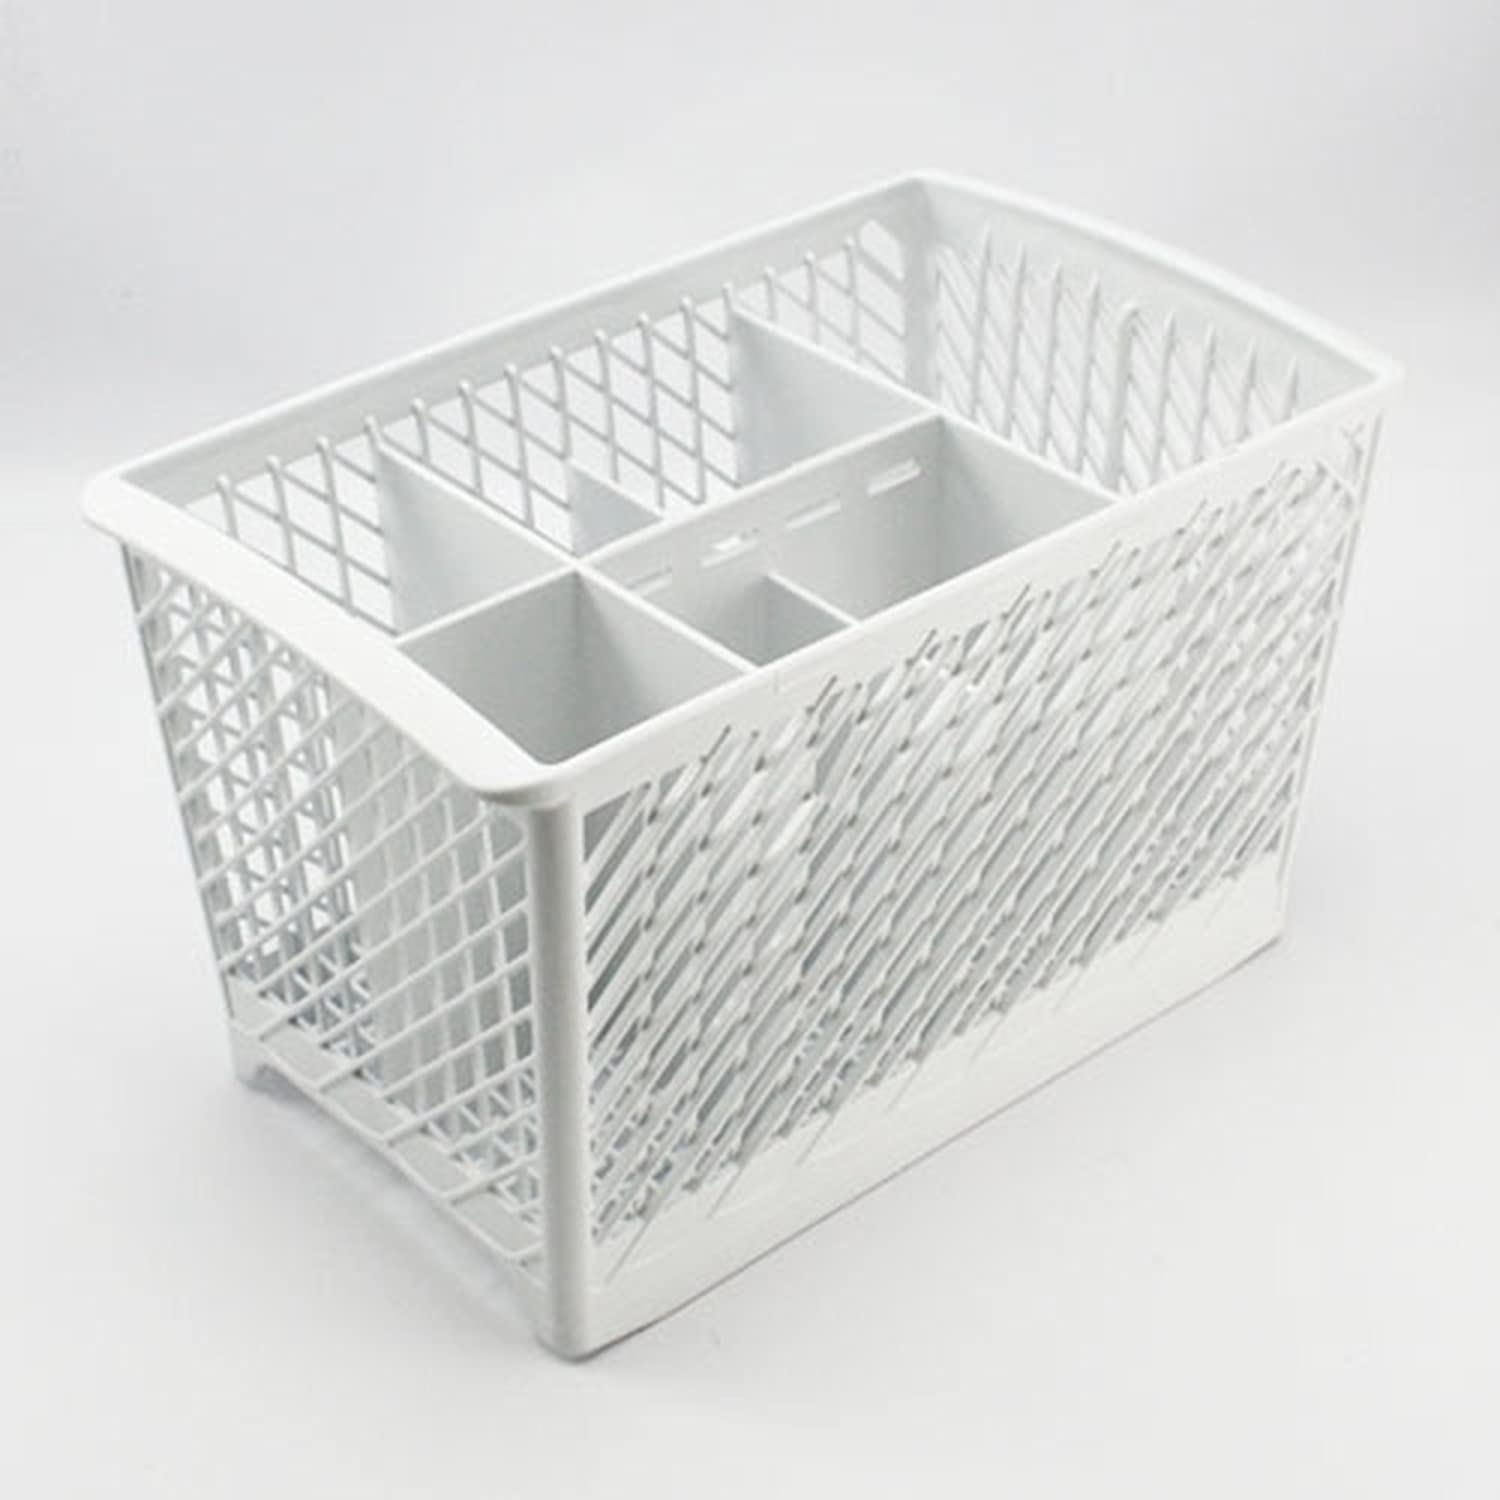 WP99001576 Dishwasher Silverware Basket Admiral Mail order cheap Free shipping on posting reviews Crosle for Amana